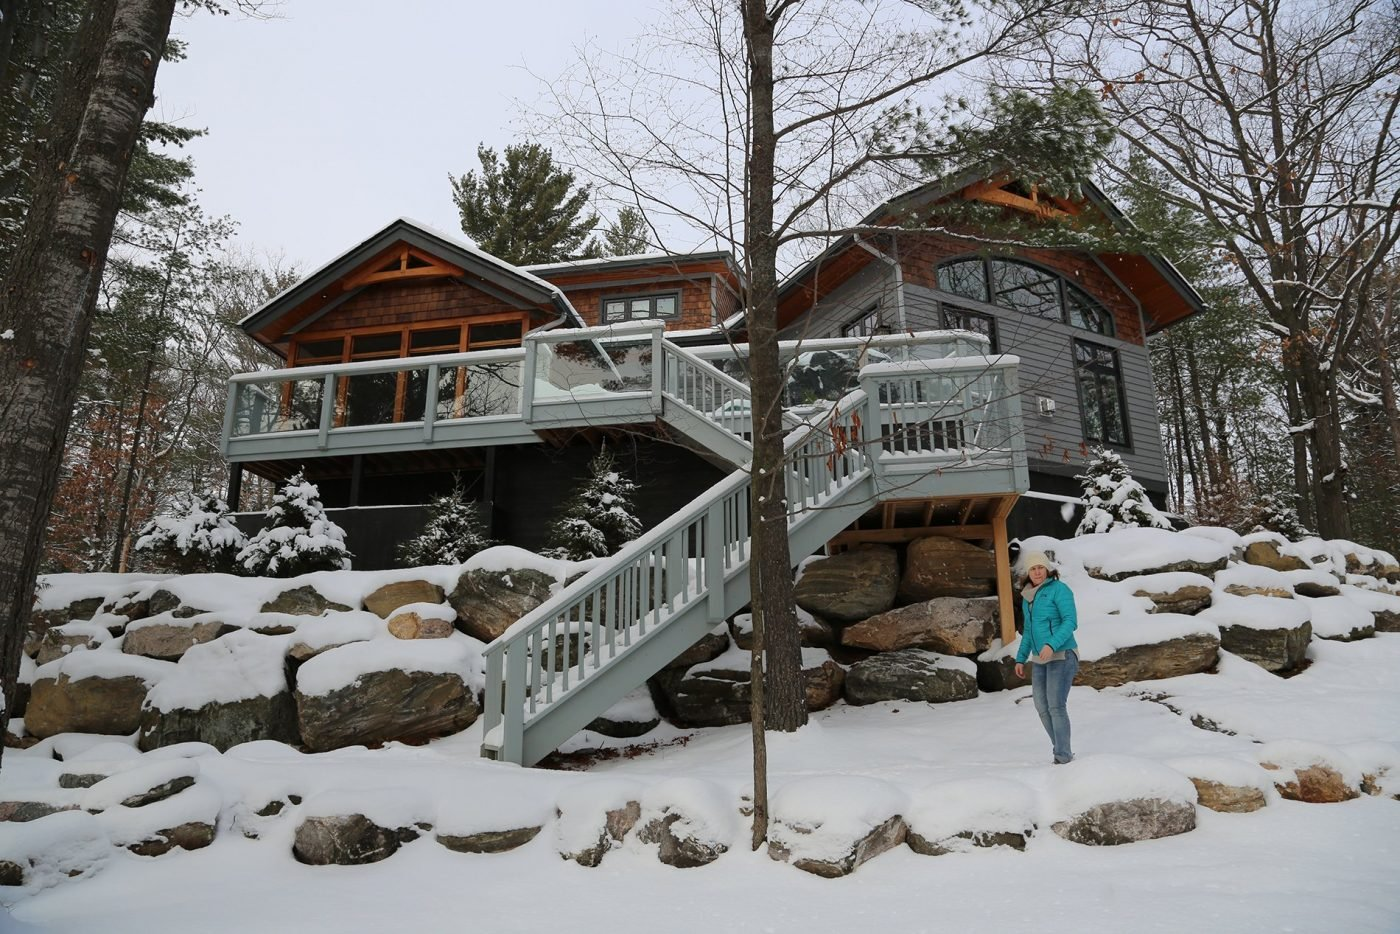 Winter magic is just outside the door at Muskoka Soul luxury cottage rentals